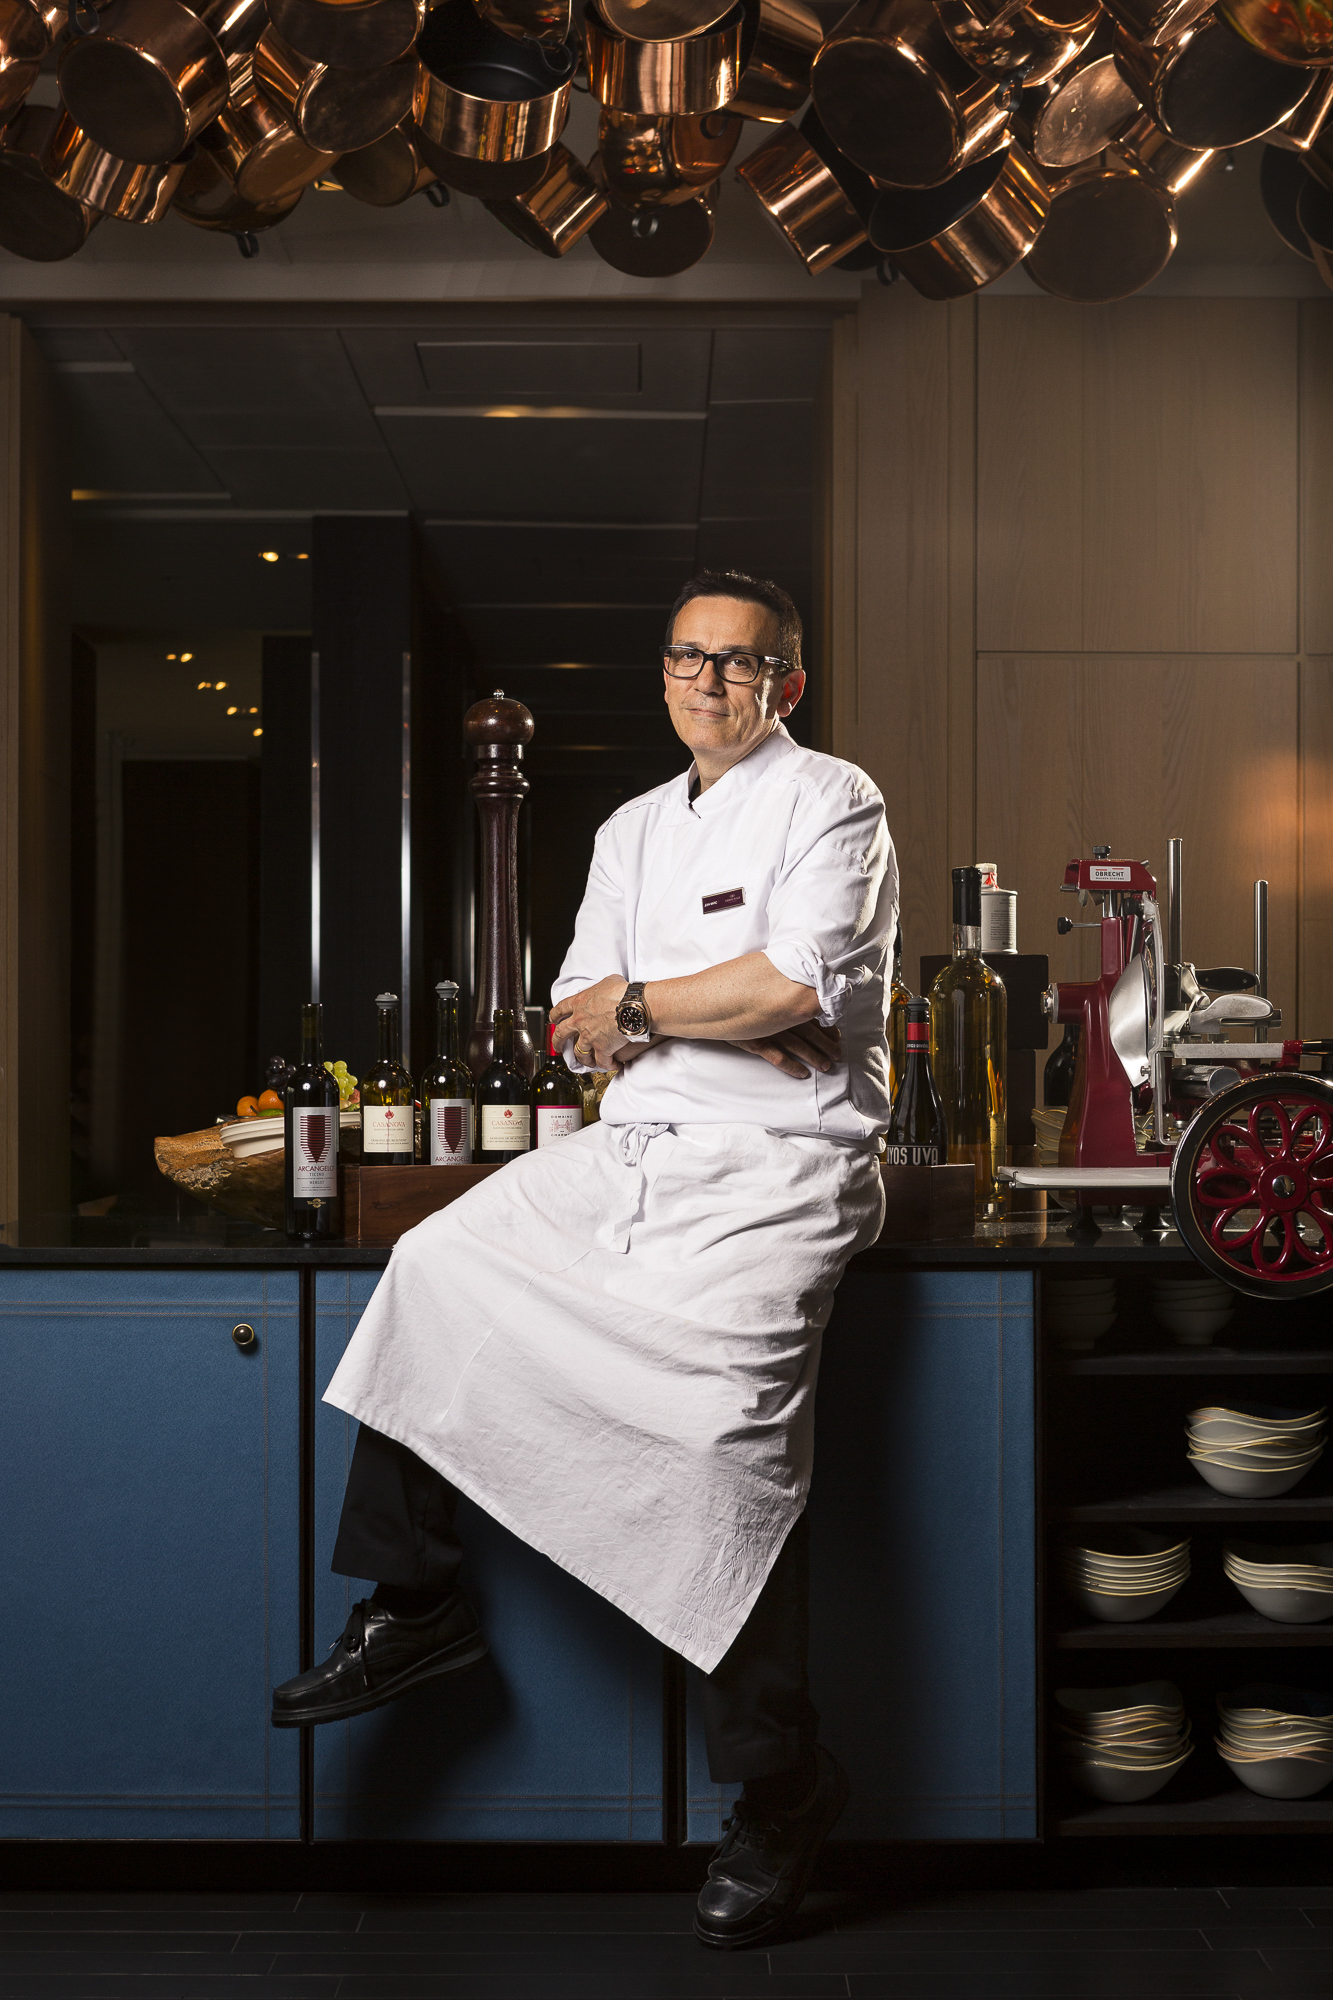 Chef Cauquil, Crown Plaza